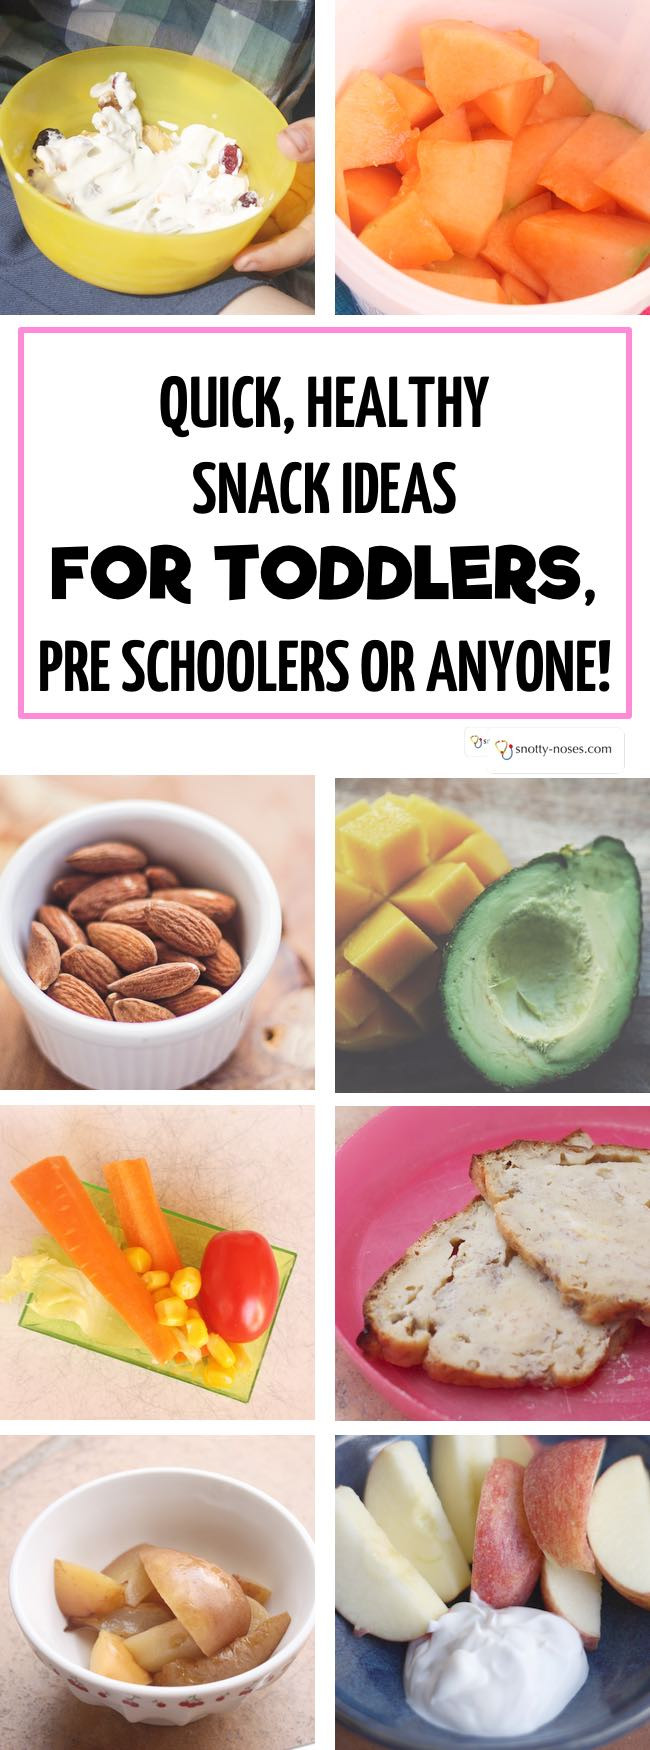 Quick Easy Healthy Snacks  Quick Healthy Snacks for Toddlers and Young Kids